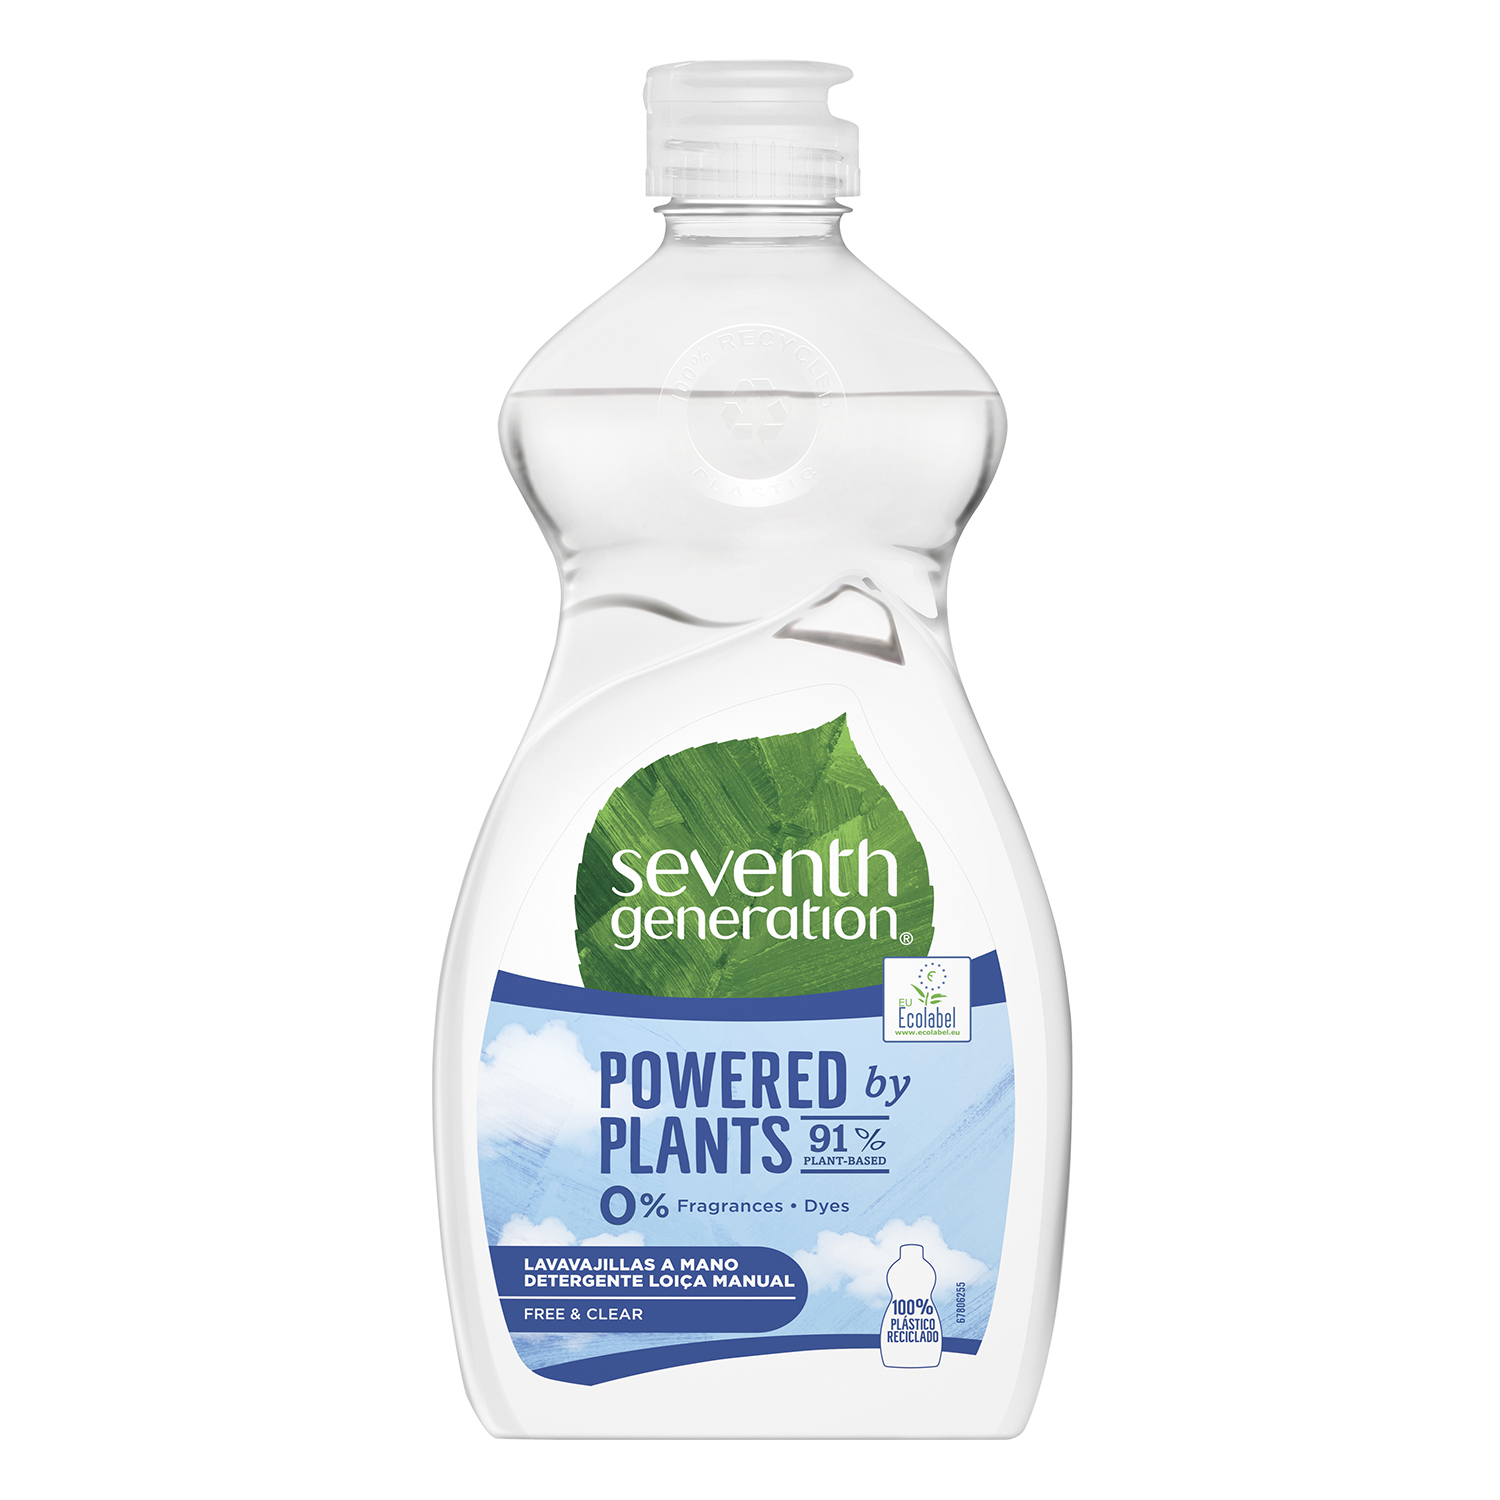 Lavavajillas a mano ecológico Free & Clear Seventh Generation 500 ml.